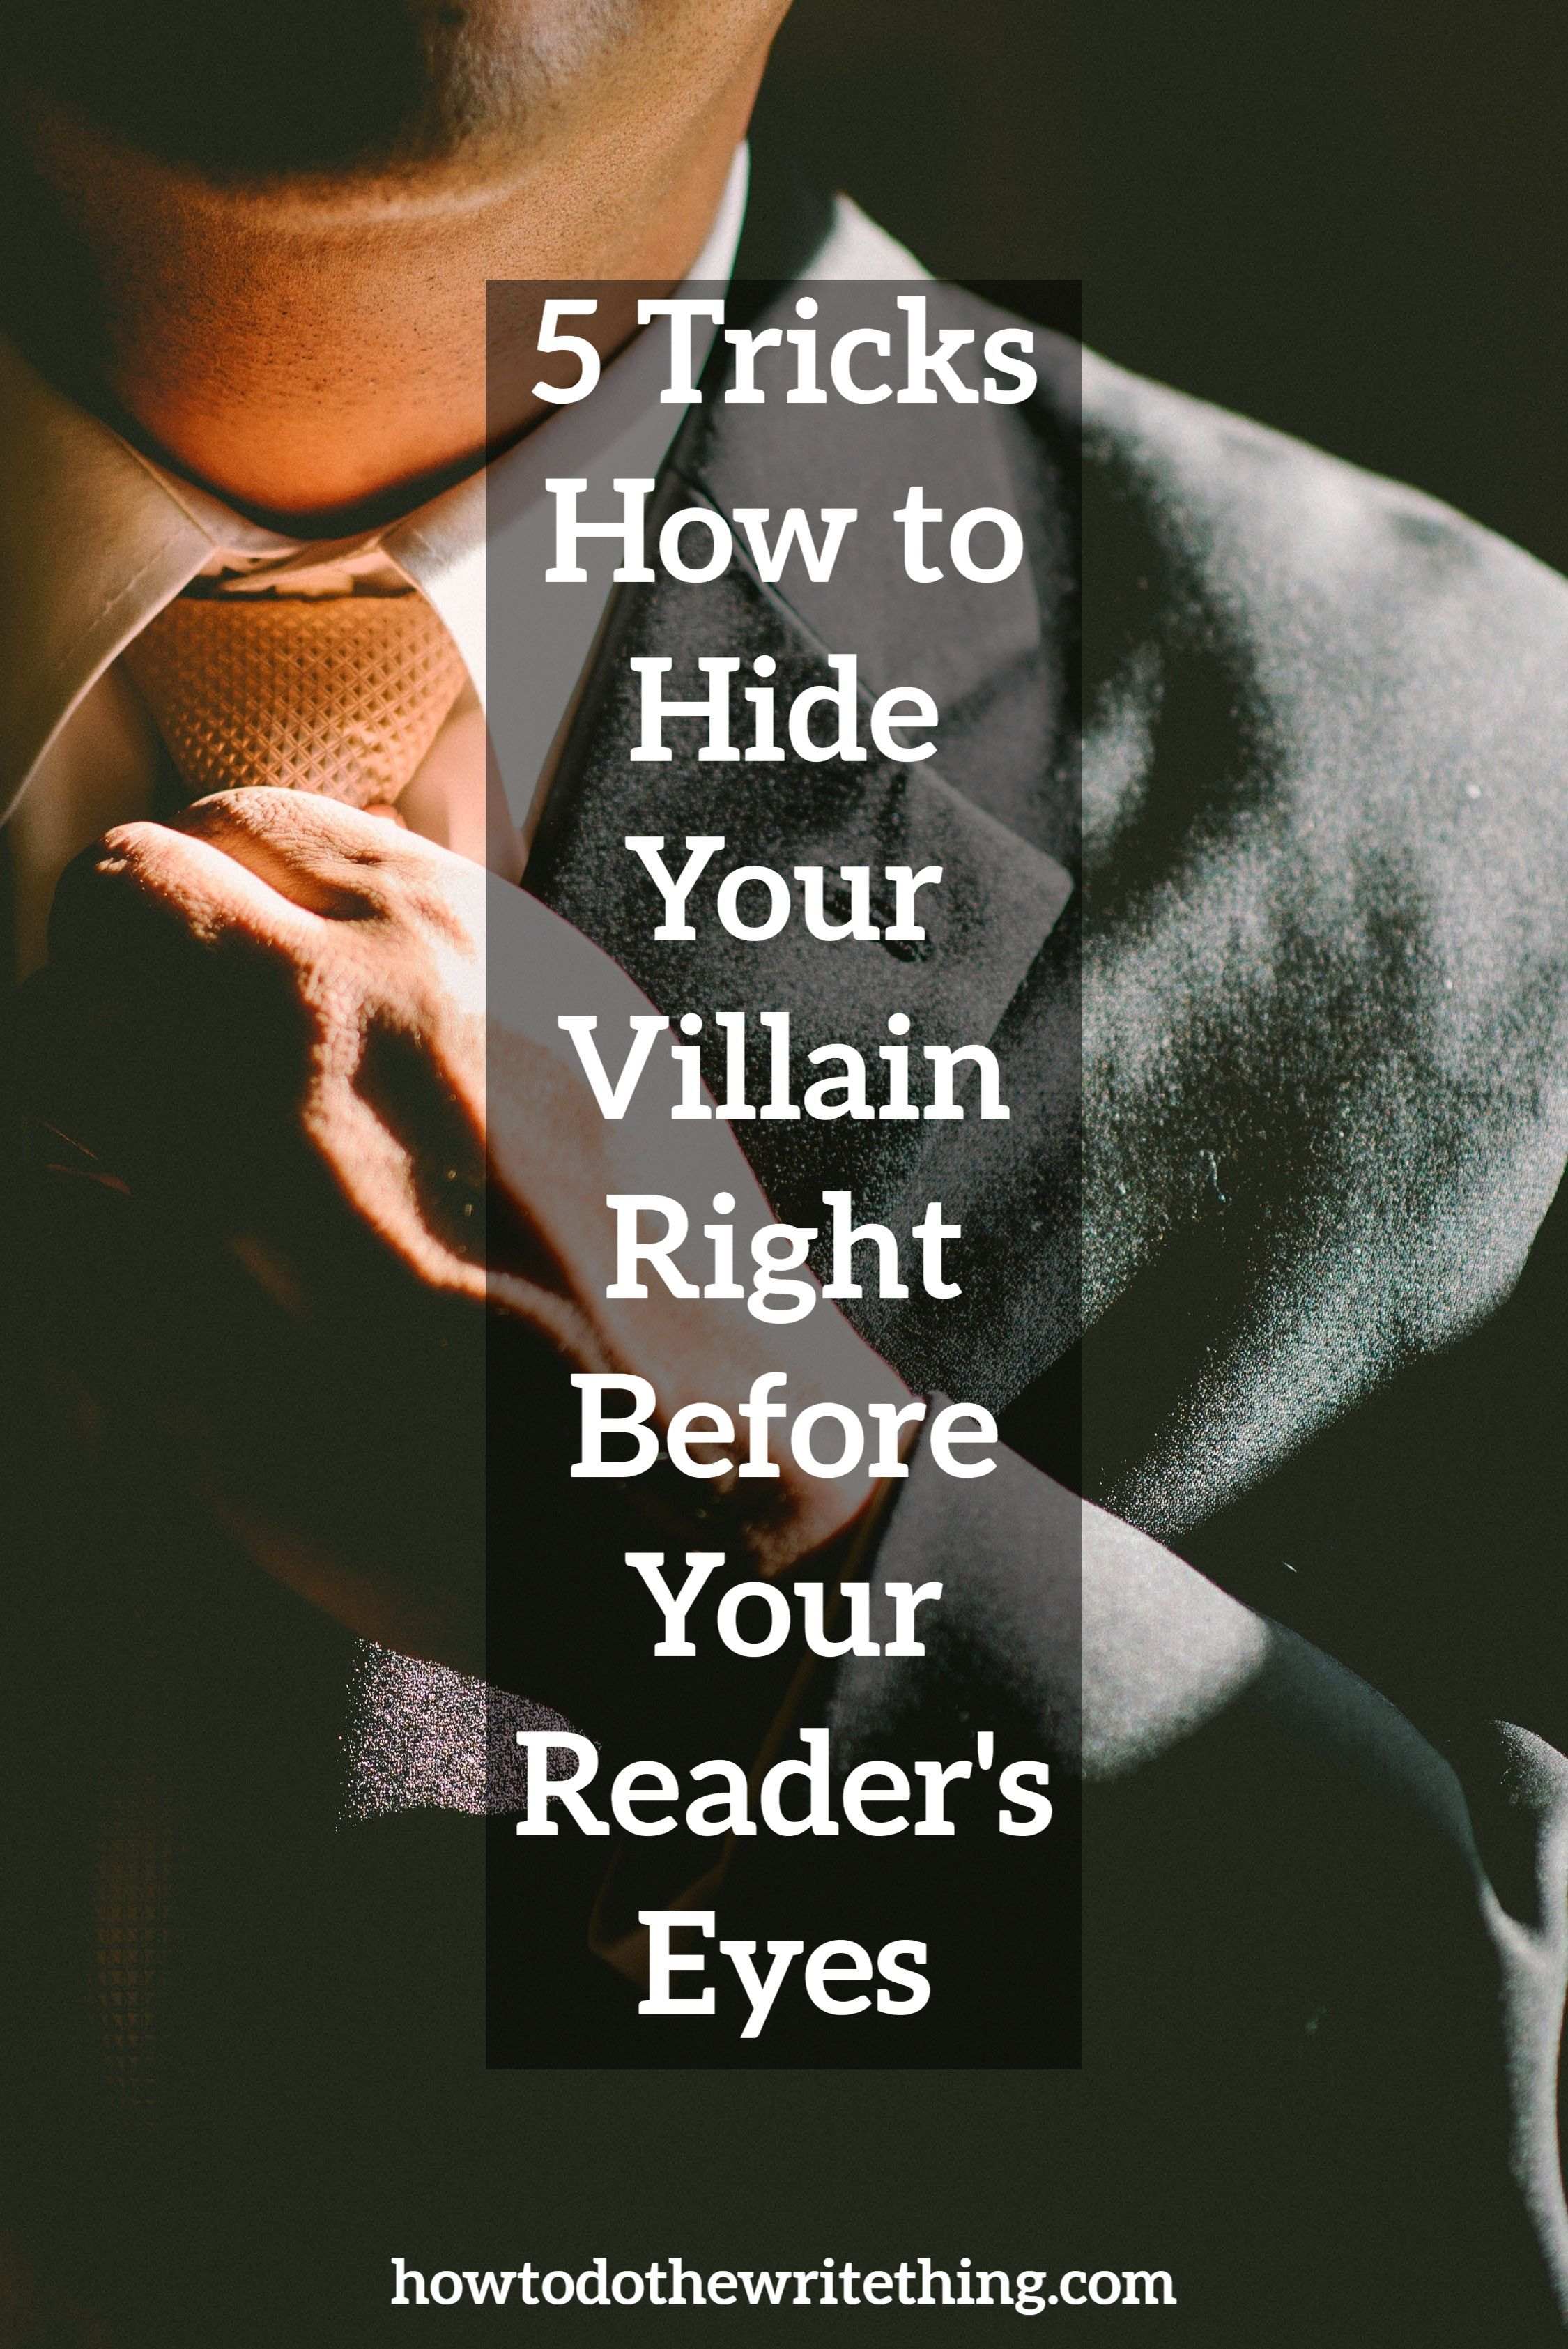 5 Tricks How to Hide Your Villain Right Before Your Reader's Eyes